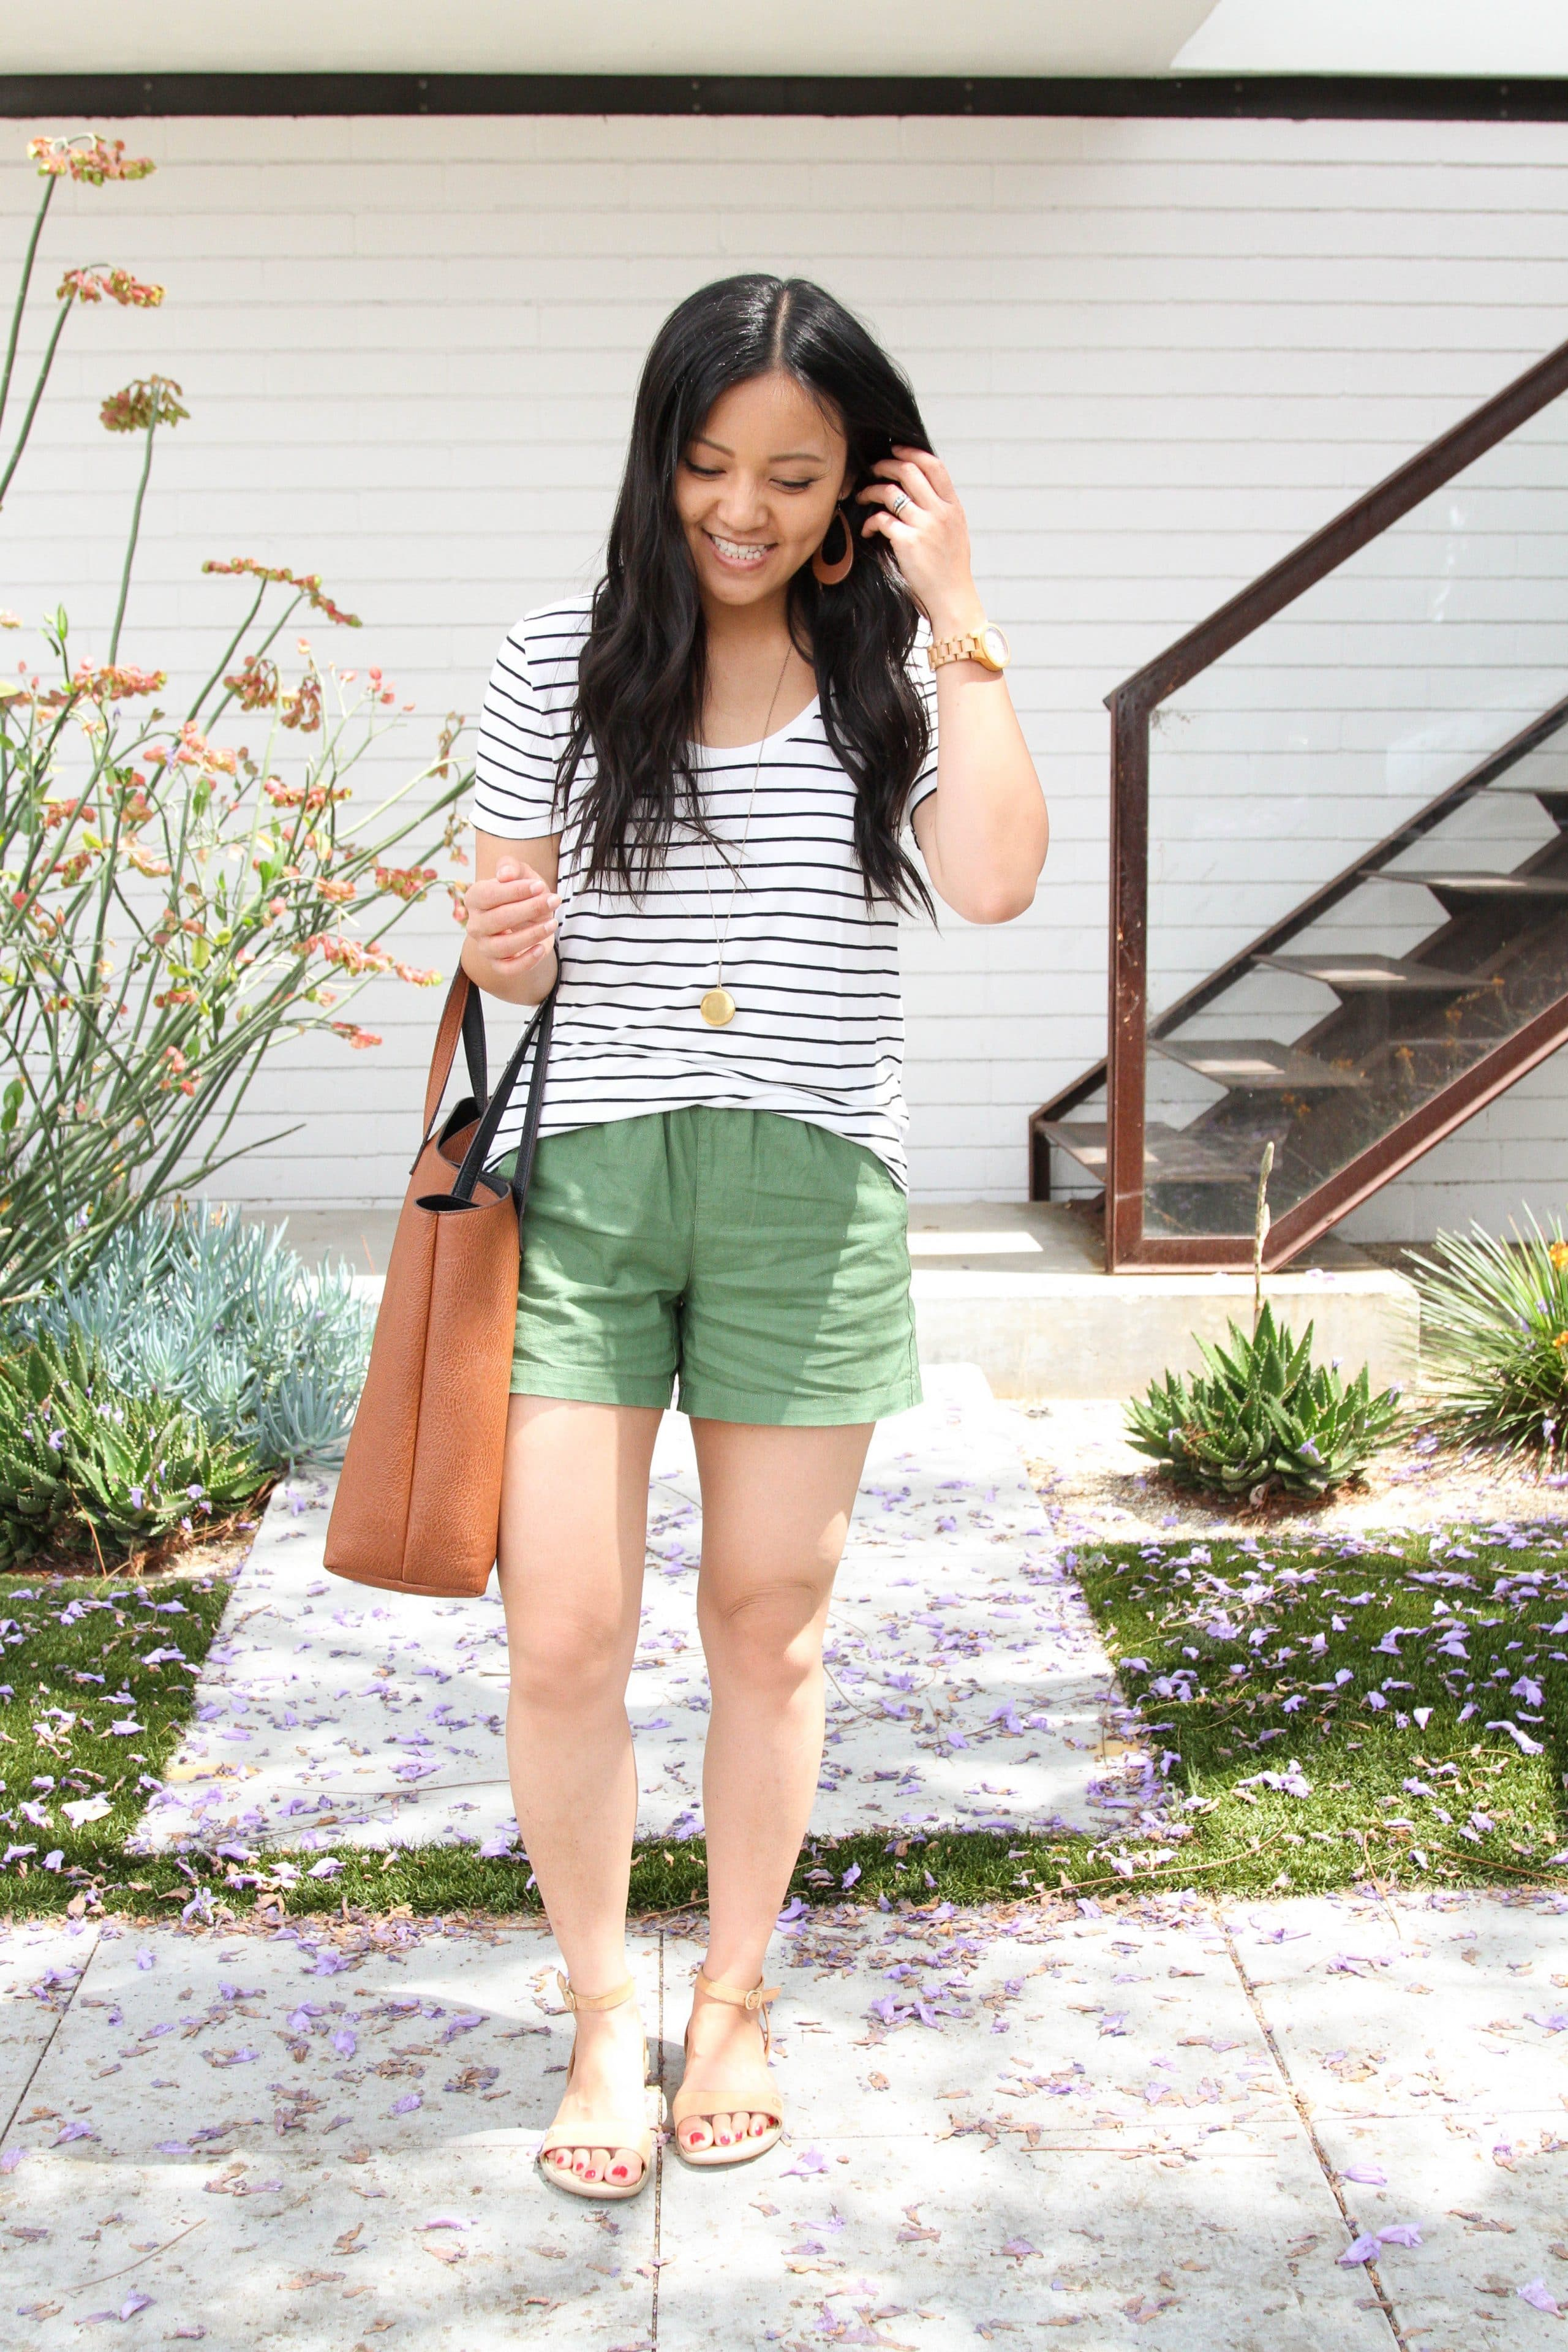 stripped tee + olive shorts + tan sandals + brown tote + long pendant necklace